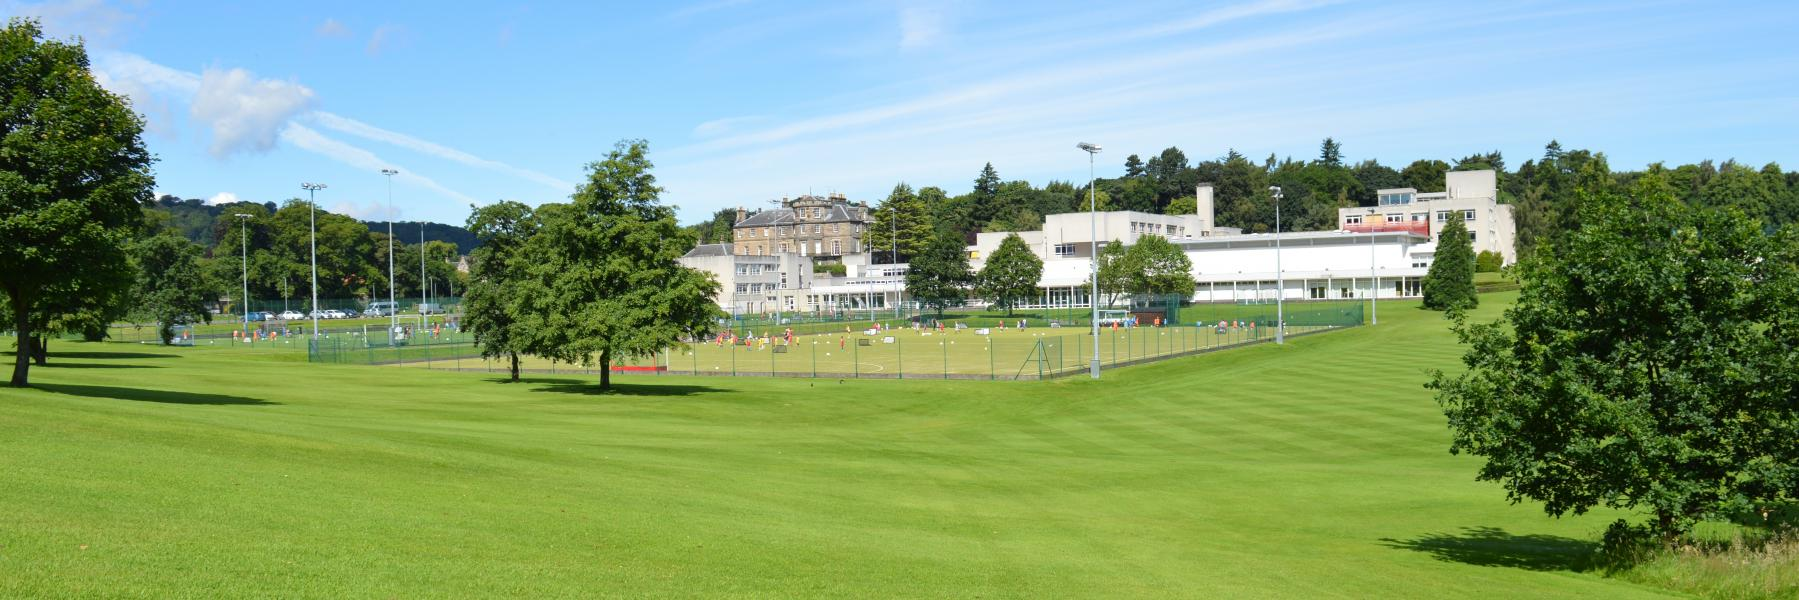 Sports Grounds at The Mary Erskine School